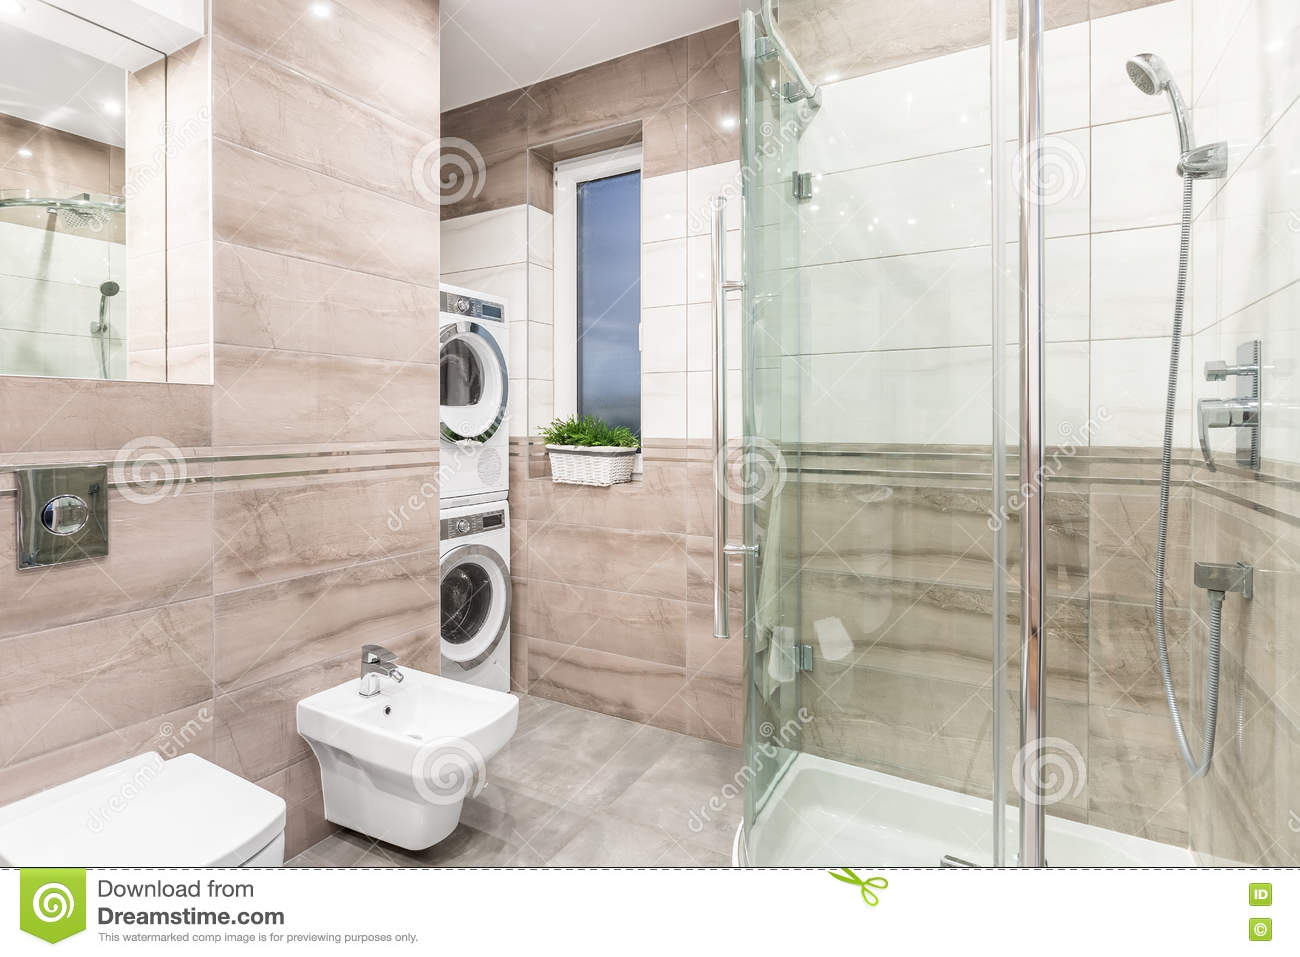 Laundry room and bathroom combo designs - Royalty Free Stock Photo Download Laundry Room And Bathroom Combined